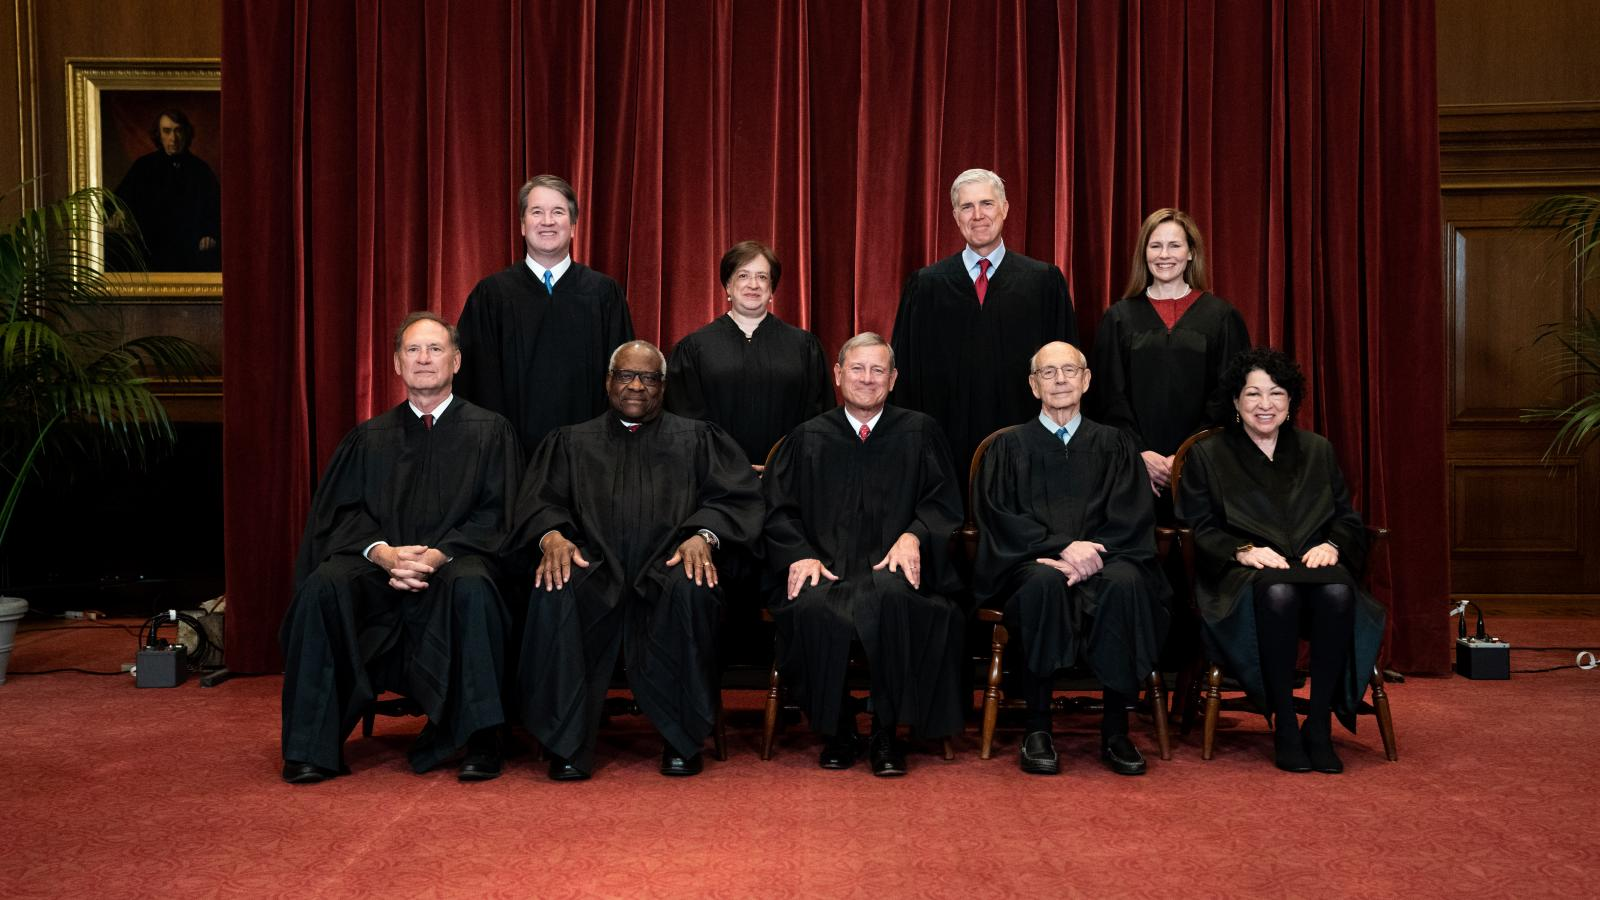 Members of the Supreme Court pose for a group photo at the Supreme Court in Washington, DC on April 23, 2021.